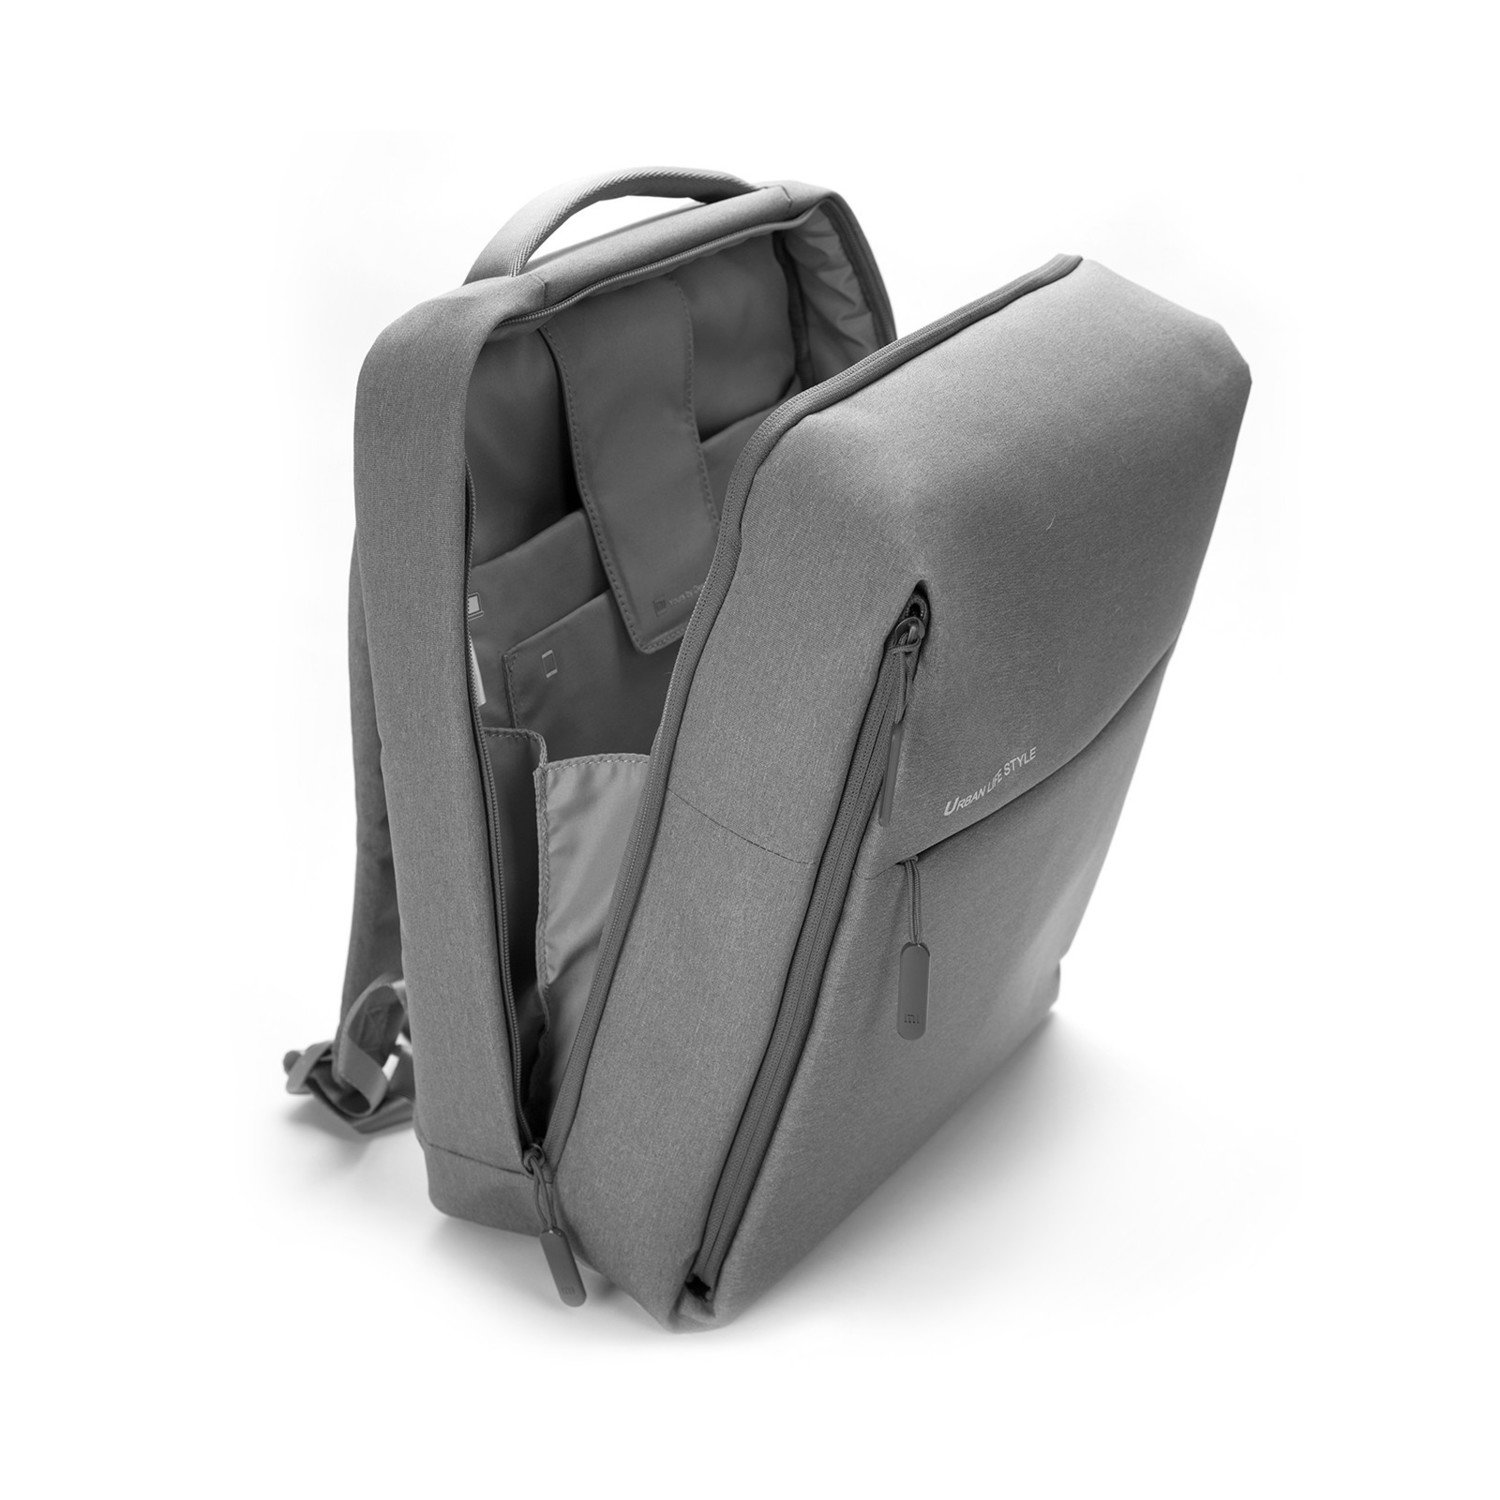 Рюкзак Xiaomi City Backpack 15.6 (Light grey)